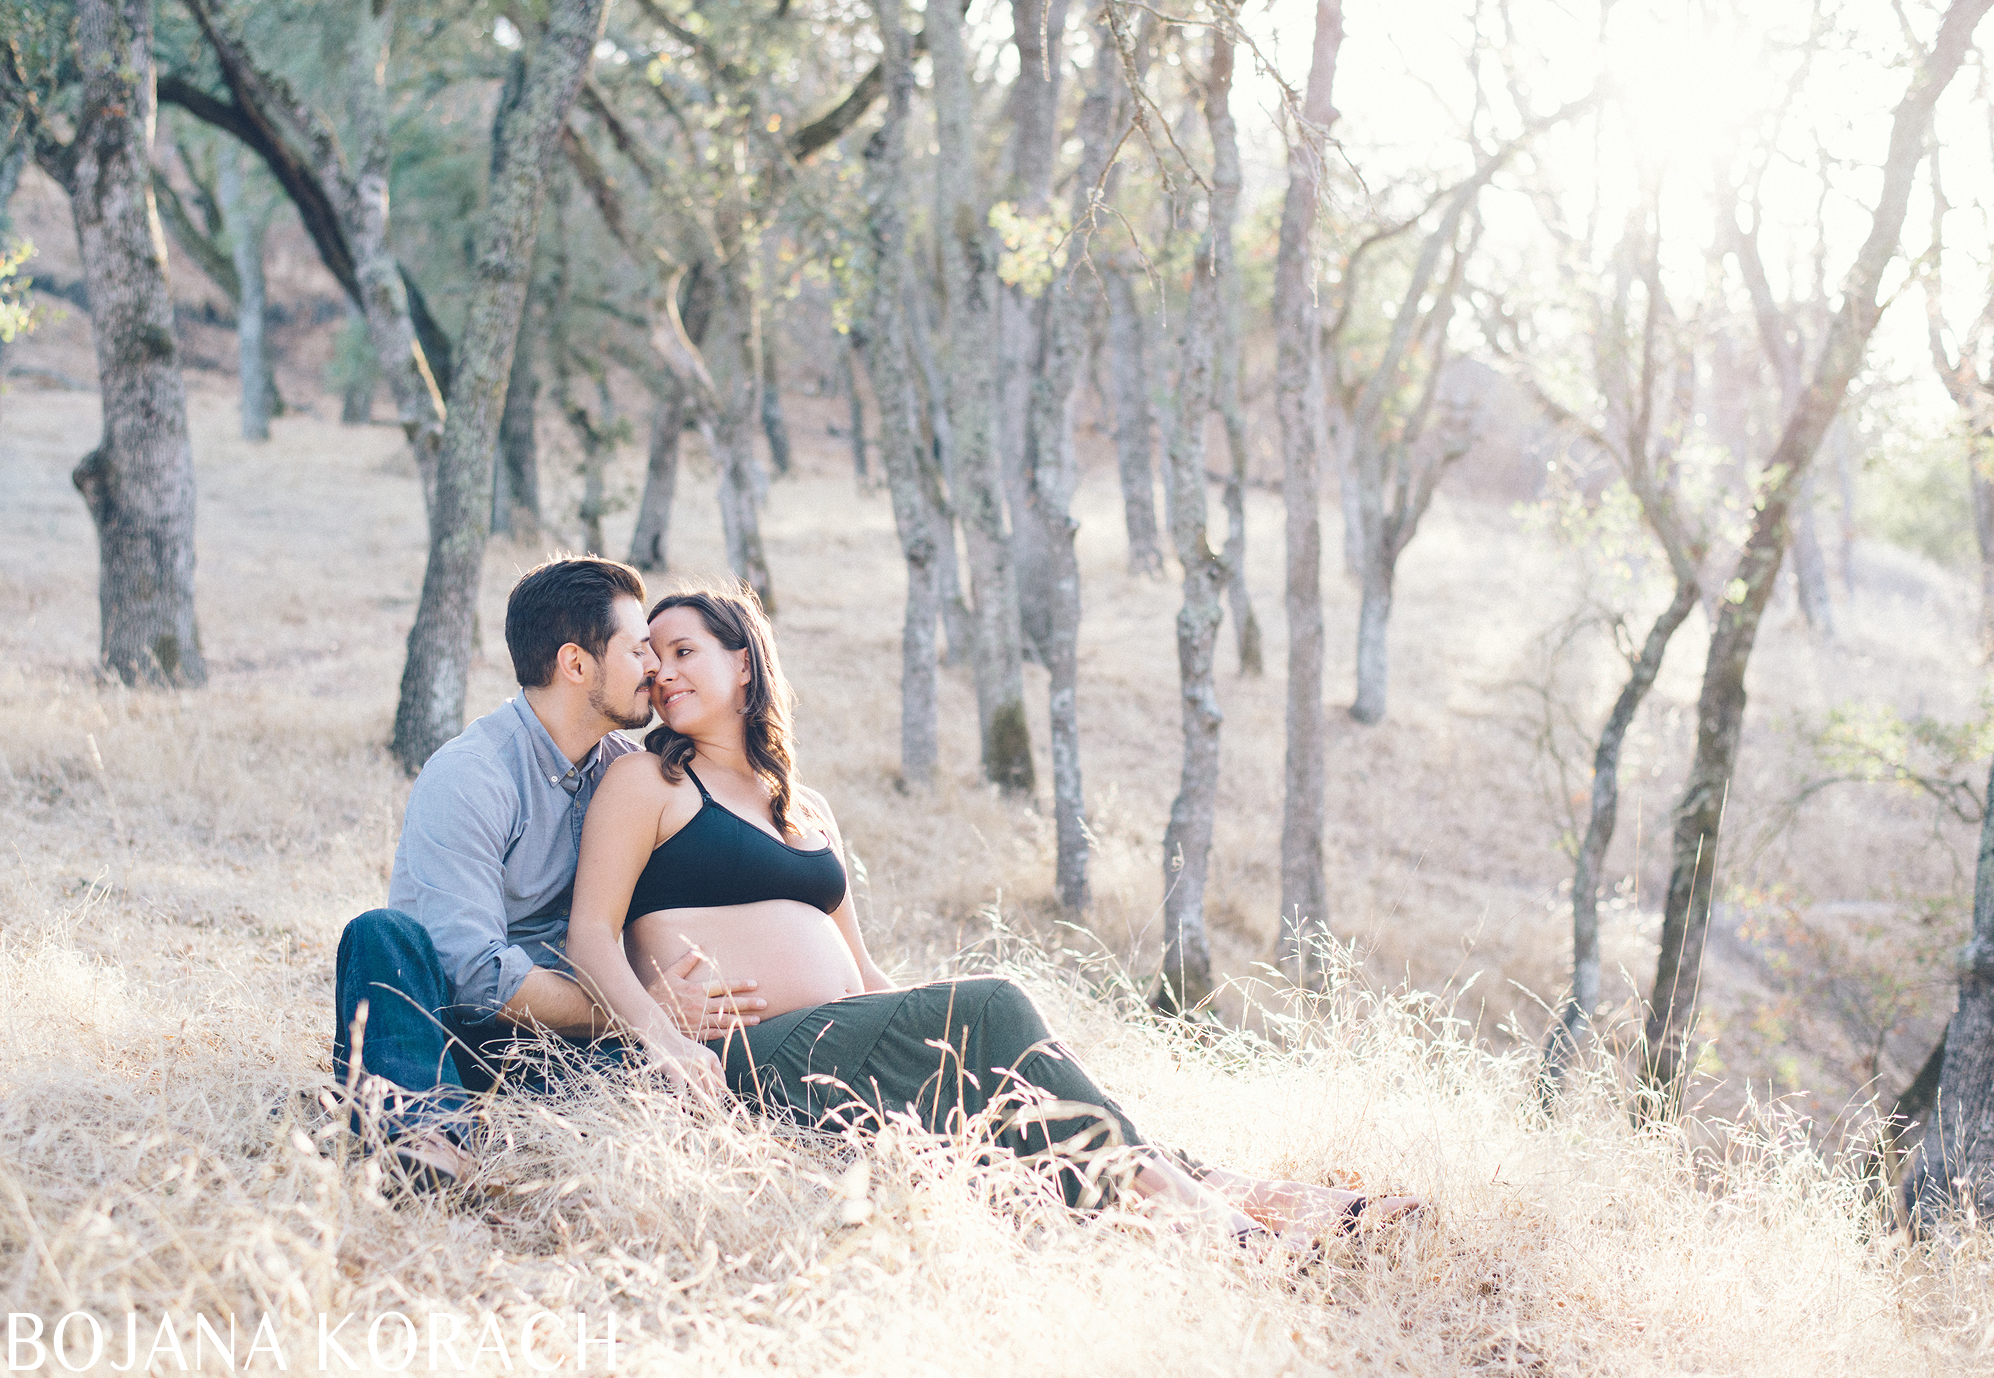 martinez-maternity-photography-11